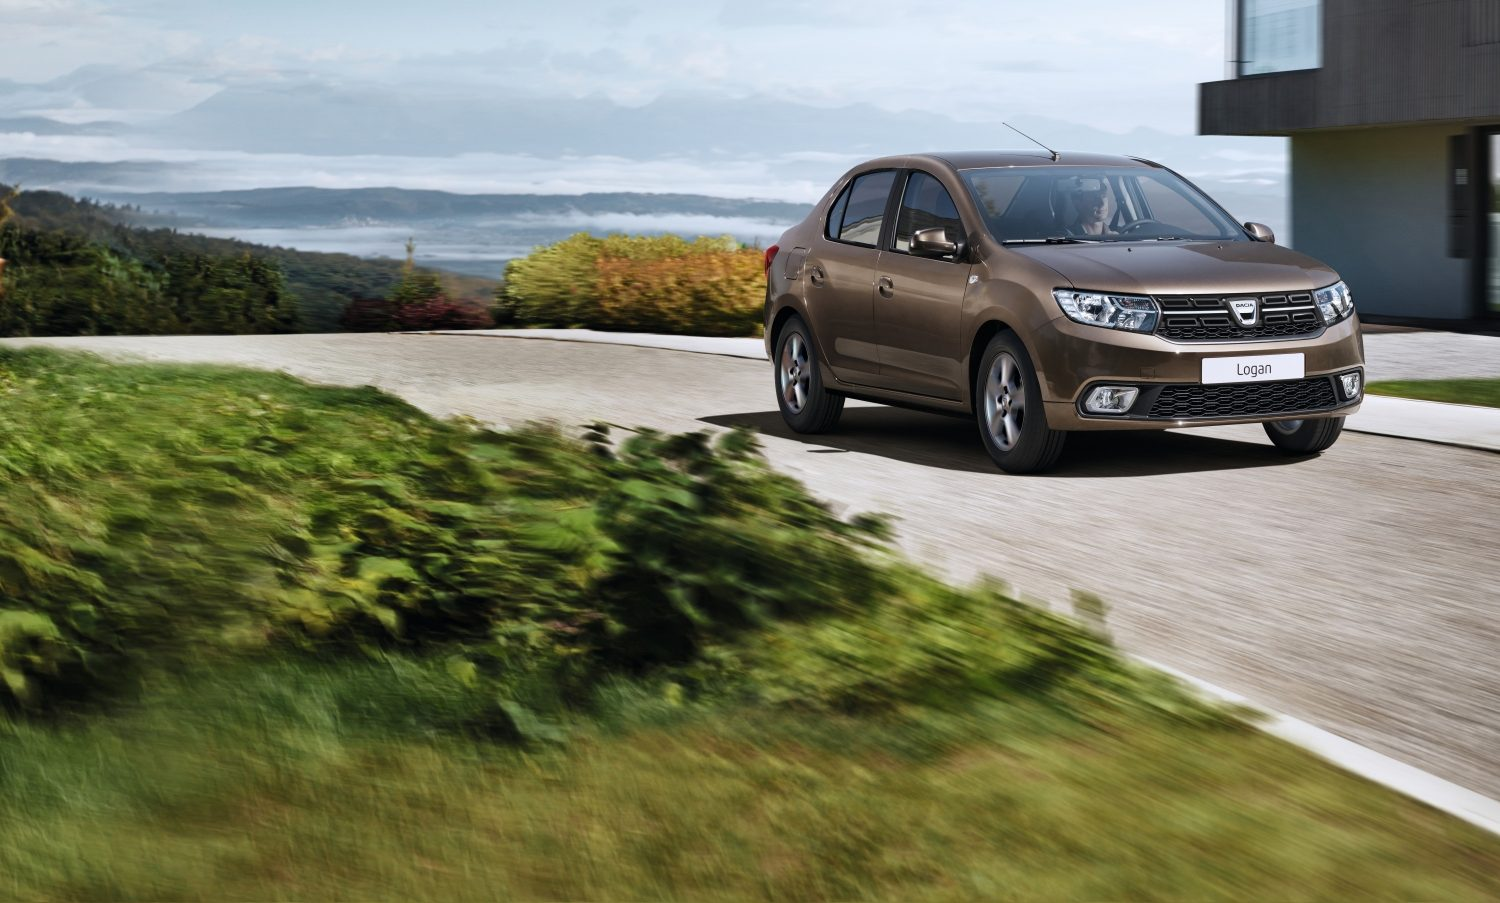 dacia-logan-l52-ph2-beauty-shot-desktop.jpg.ximg.l_full_m.smart.jpg